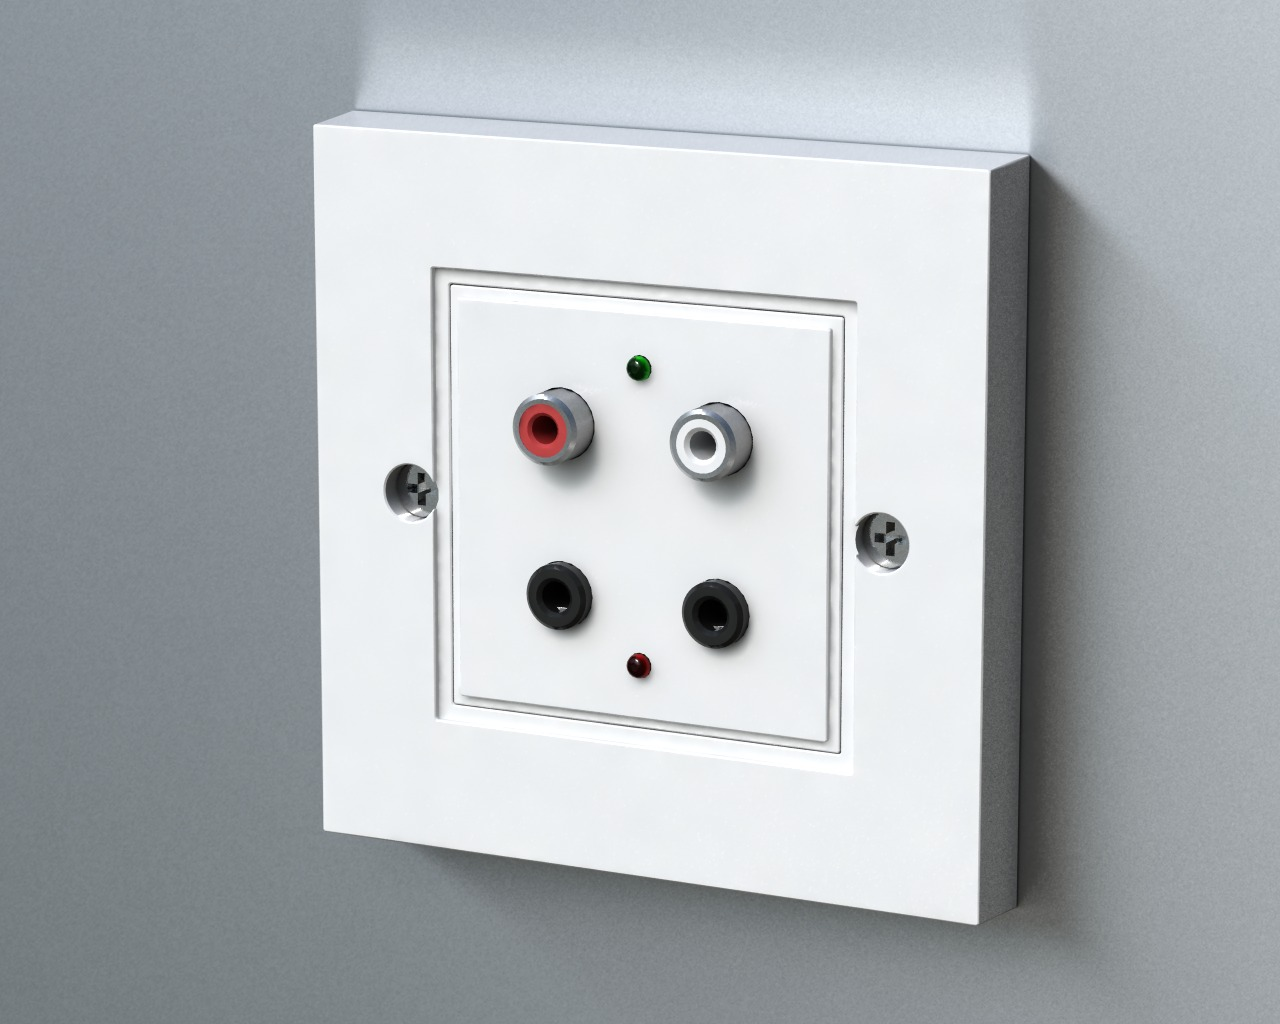 Forte Electronics Set Your Home Audio Free Structured Wiring Panel Wall A Bus Hub For Panels 4 Source Zone 8 Room